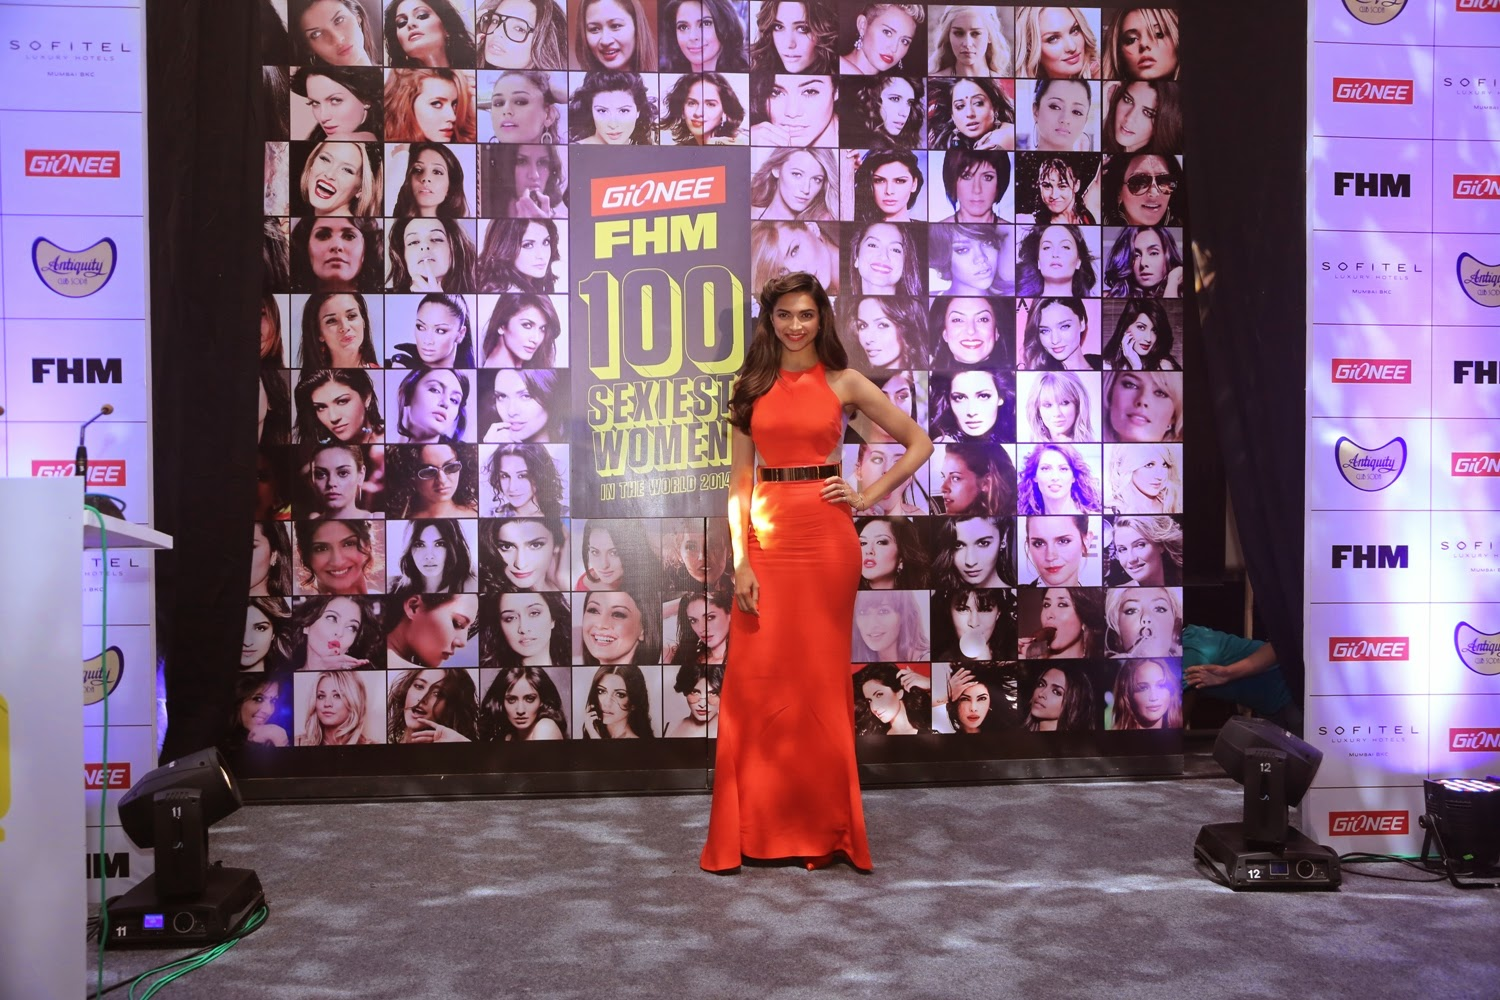 Gionee FHM 100 Sexiest !